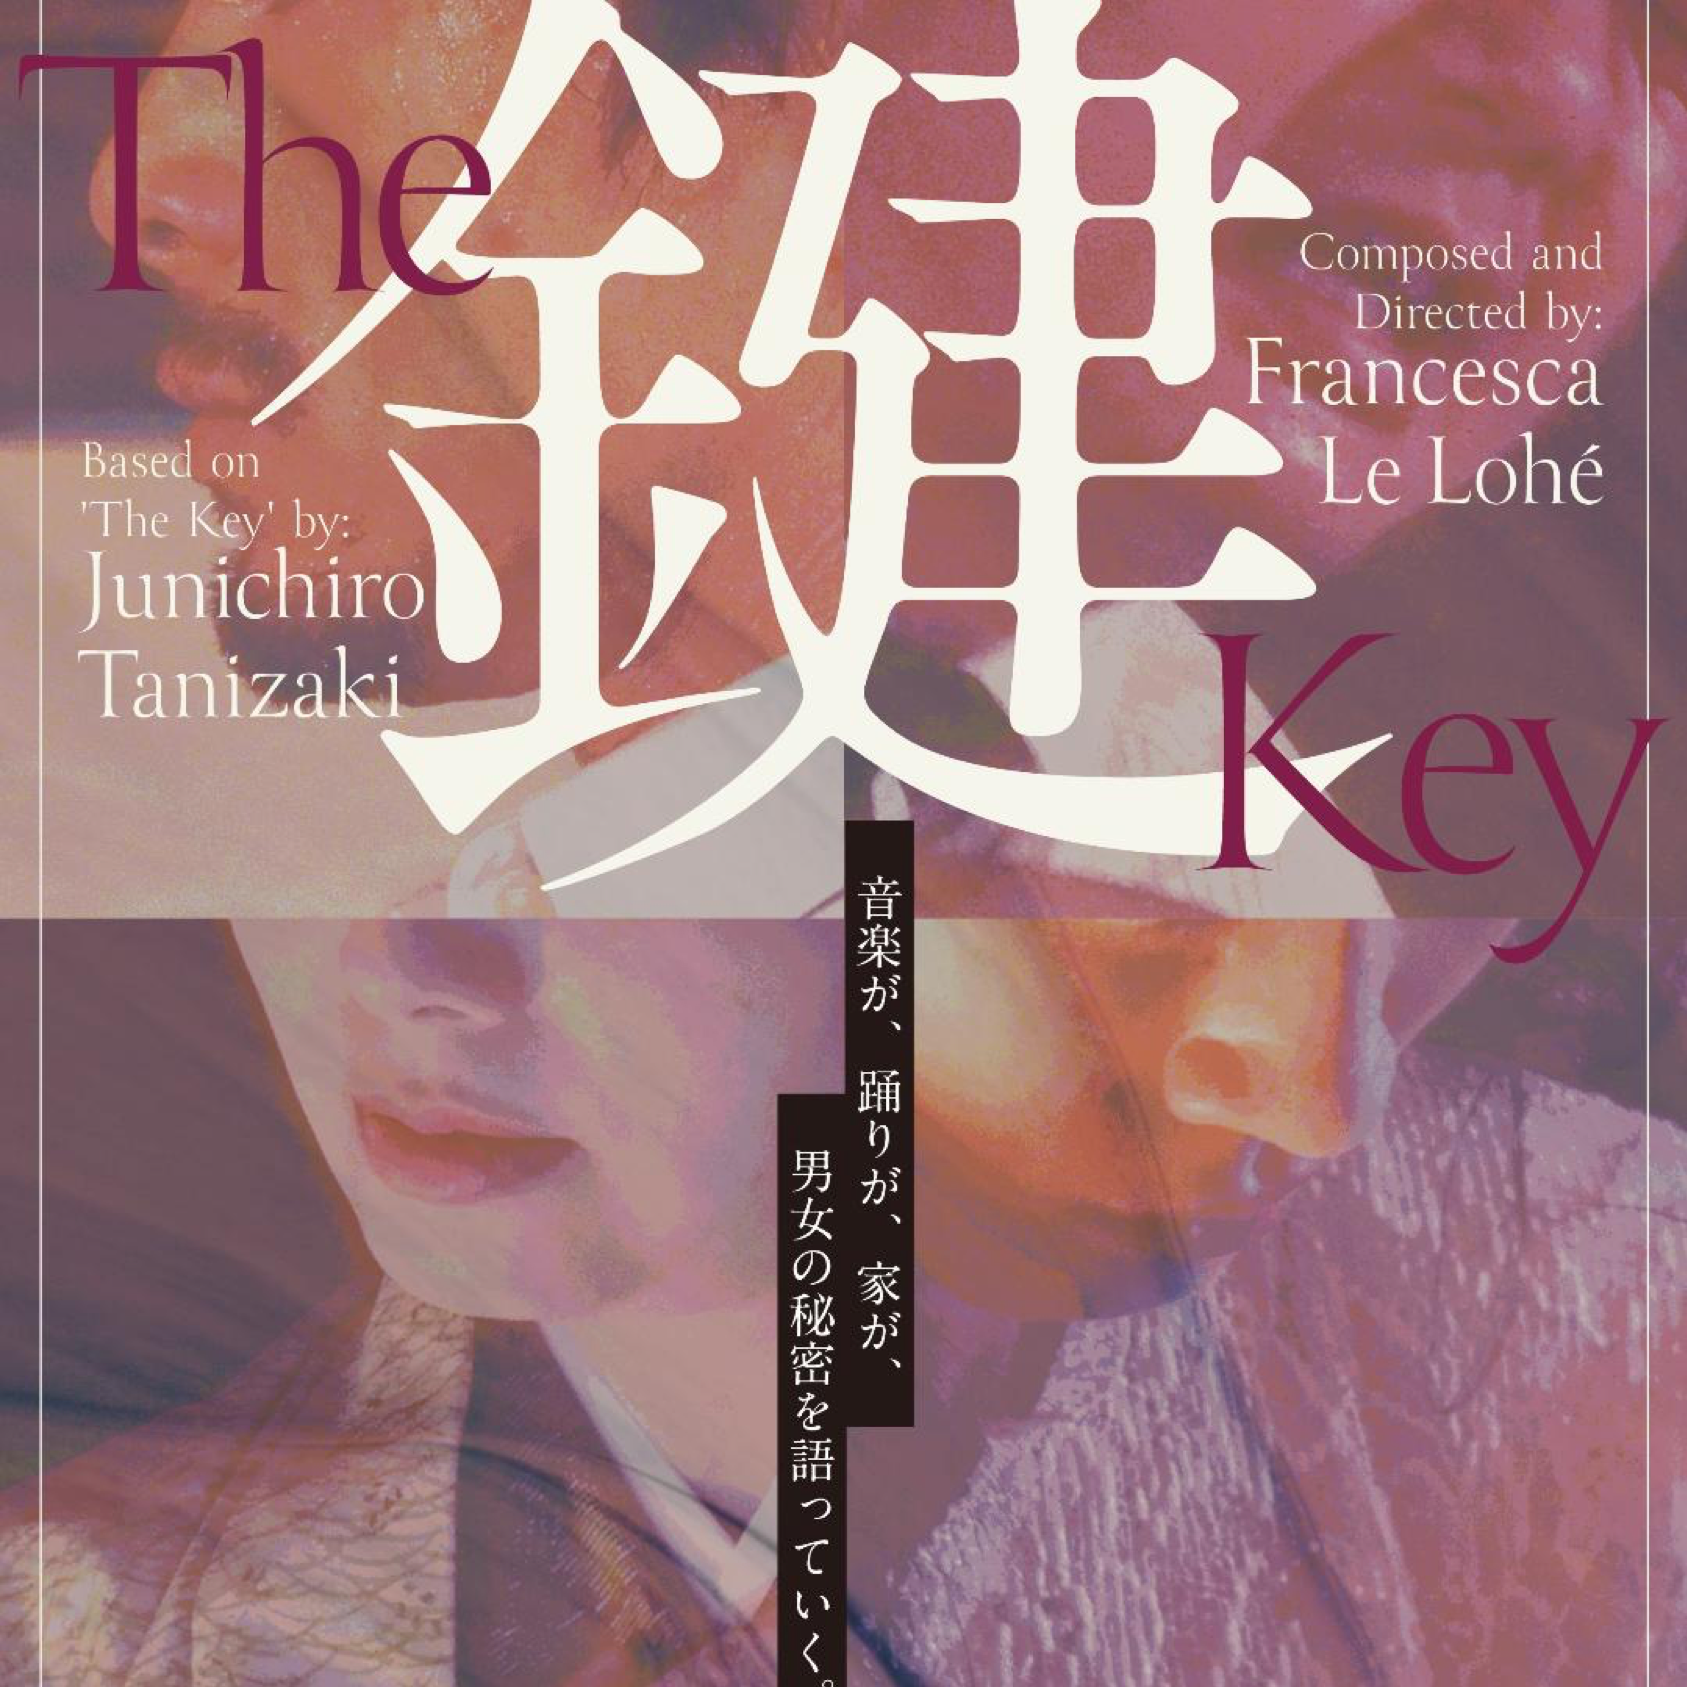 THE鍵KEY is a site-specific, Anglo-Japanese, dramatic musical work inspired by Junichiro Tanizaki's 'The Key' (1956) by composer Francesca Le Lohé -